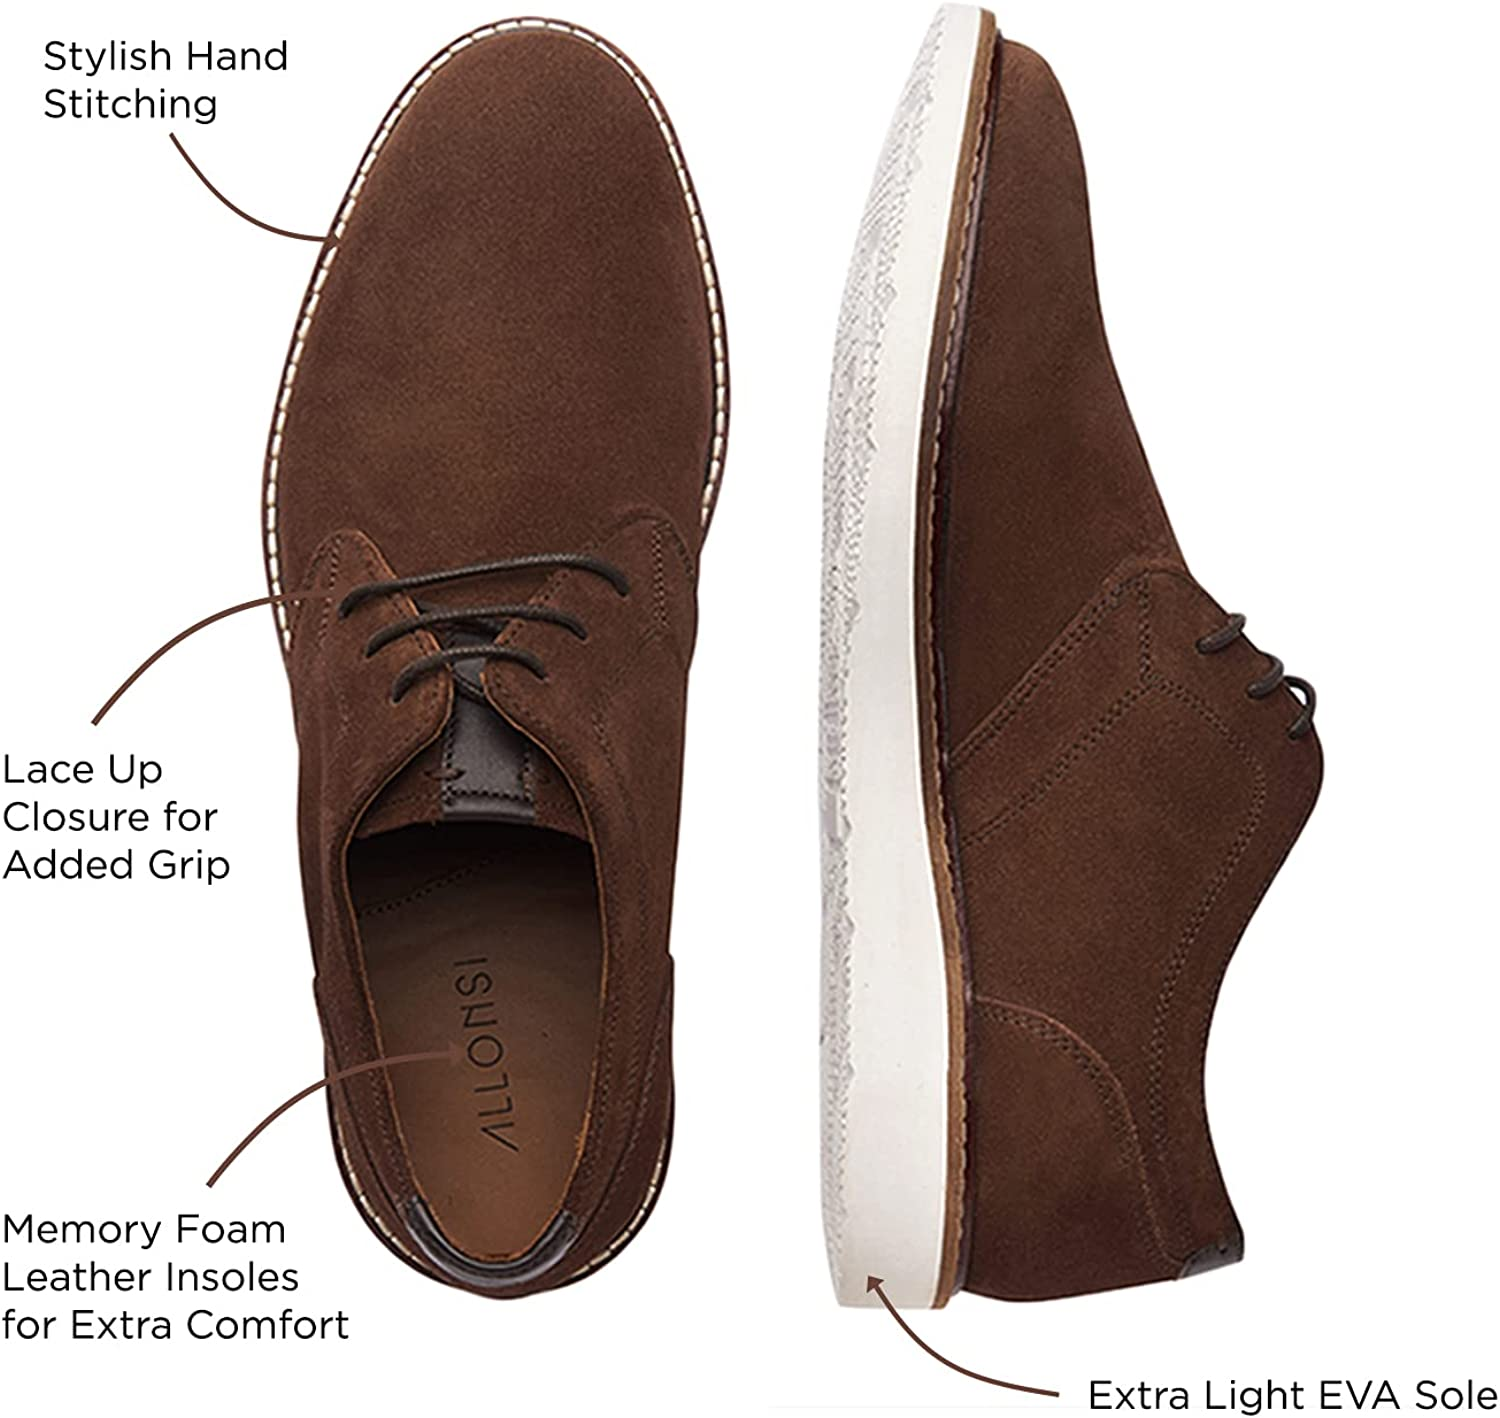 Allonsi | Genuine Leather Suede Shoes | Men's Casual Suede Sneakers | Comfortable Everyday Casual Shoes | Flexible Sole | Cushioned Foot Support | Handcrafted Detailing | Quality Craftsmanship